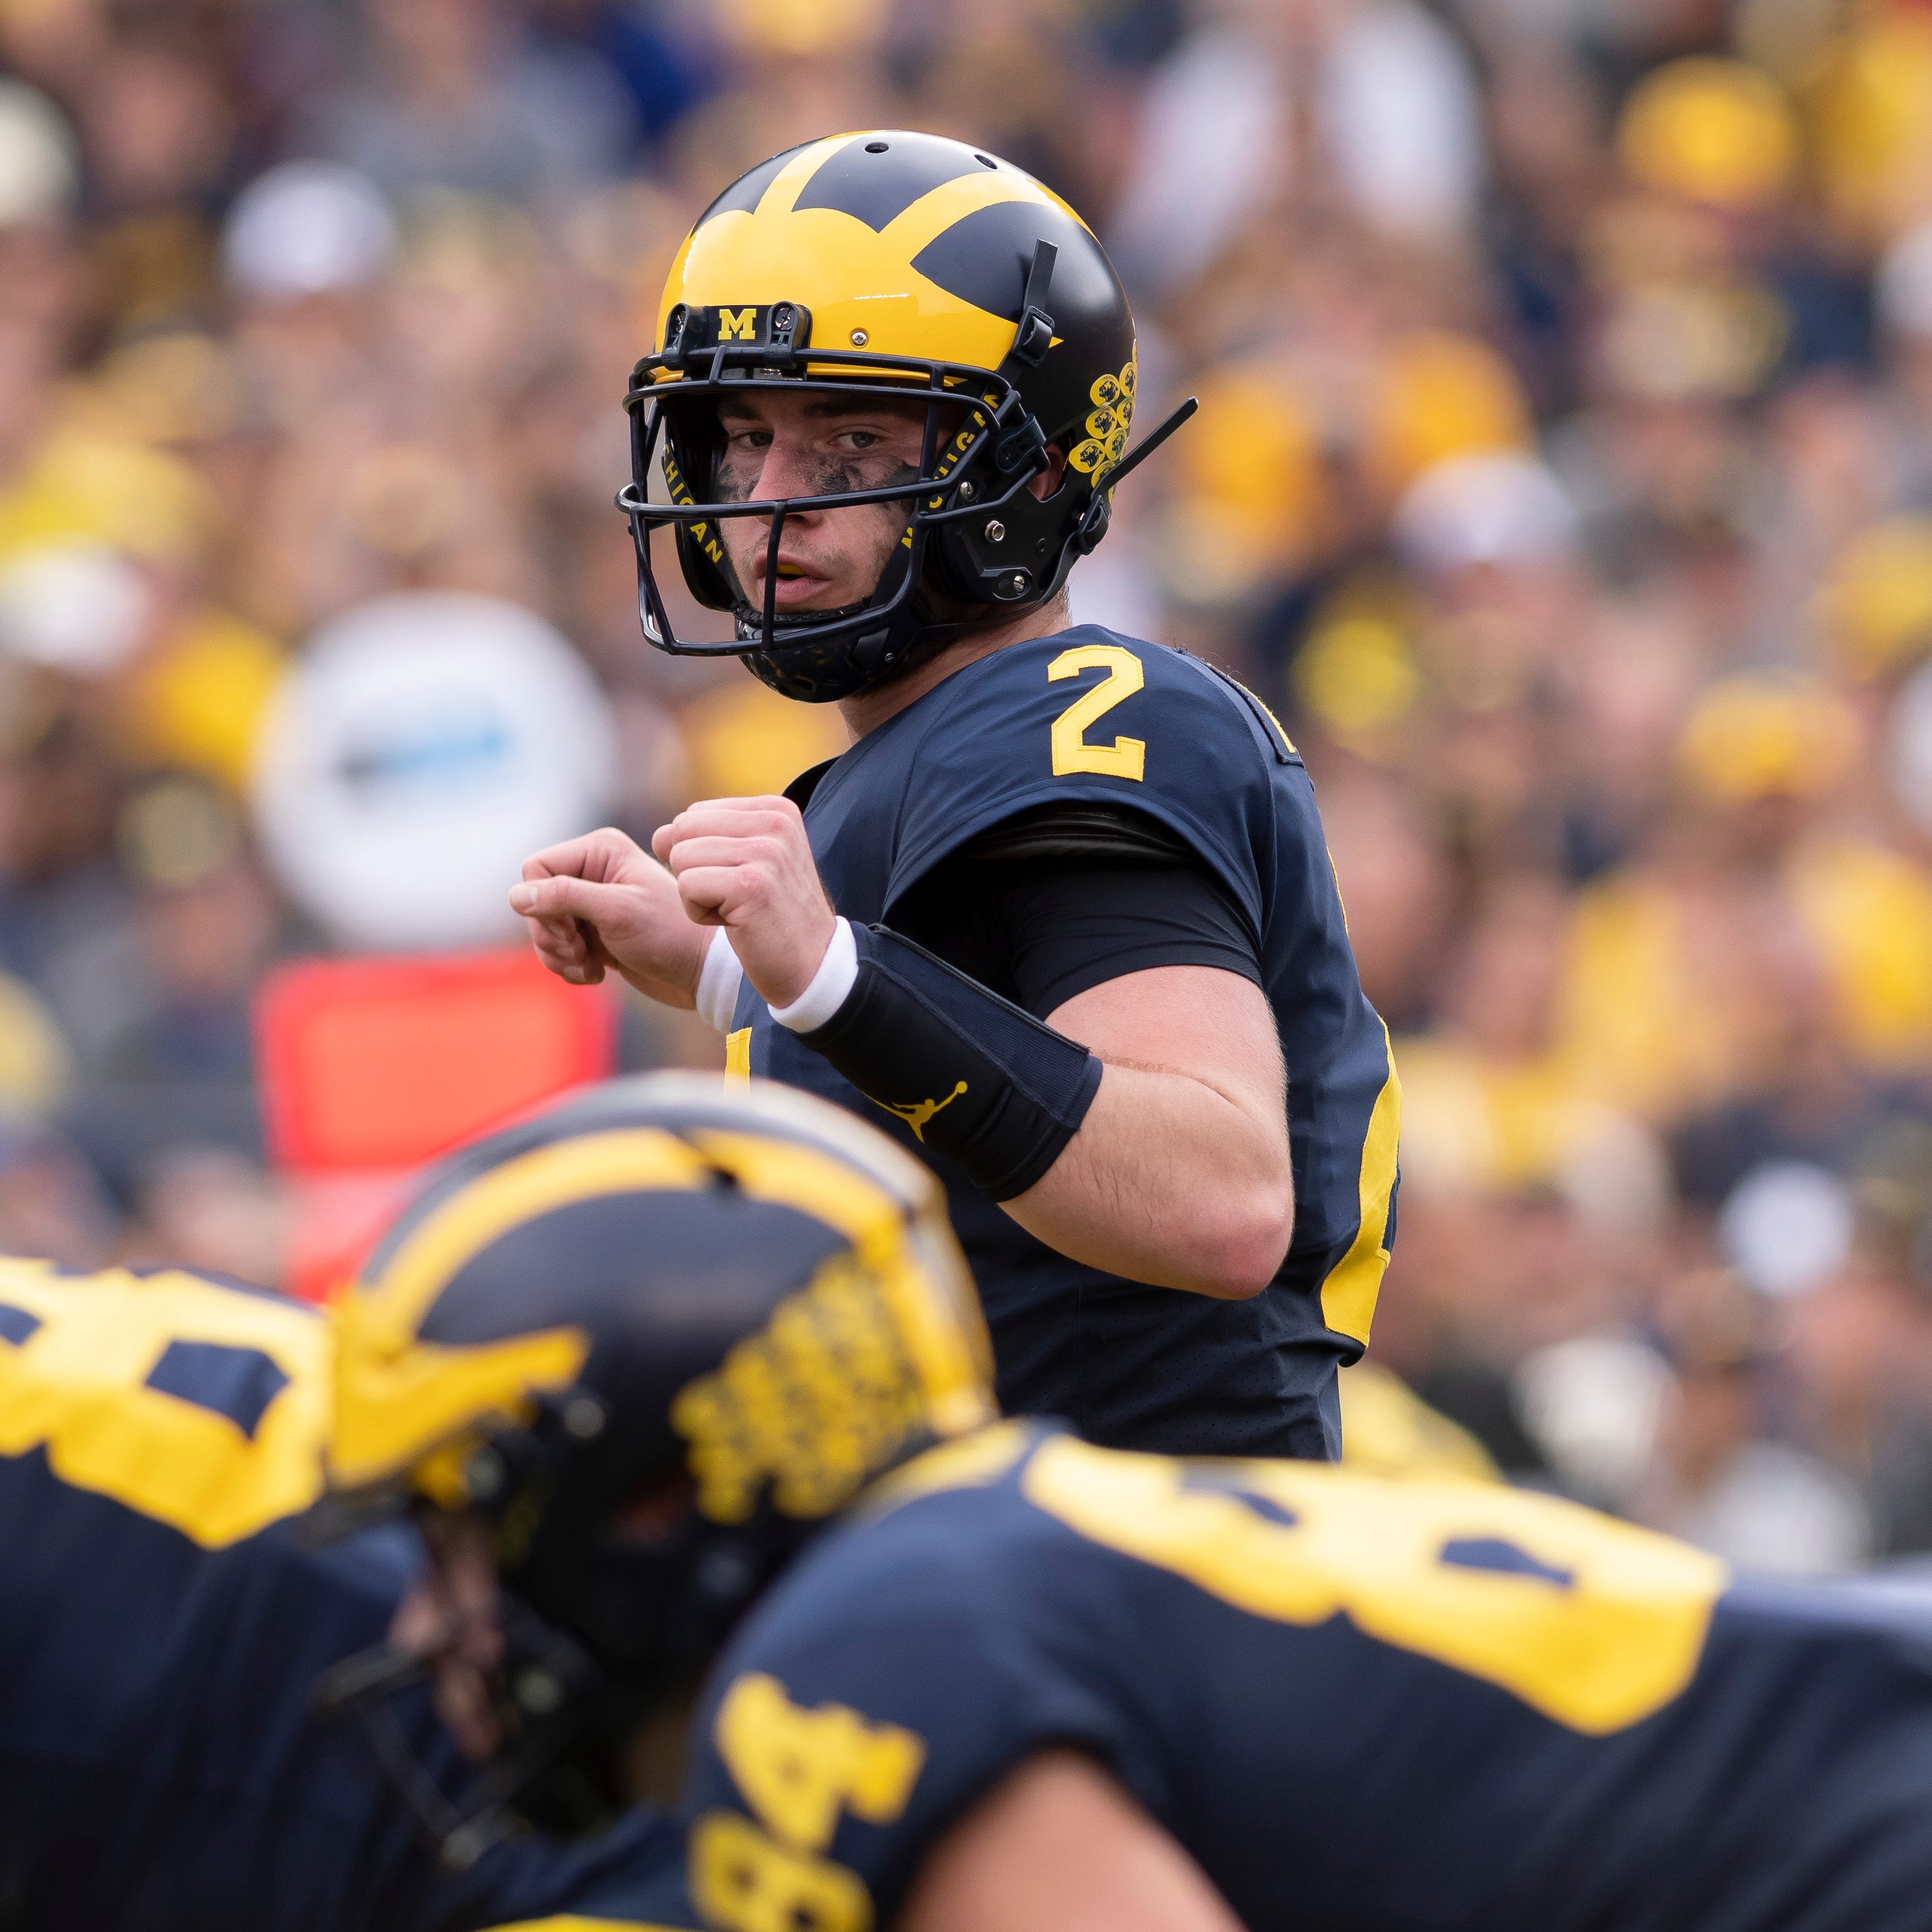 Patterson paves winning way for 'playoff ready' Michigan